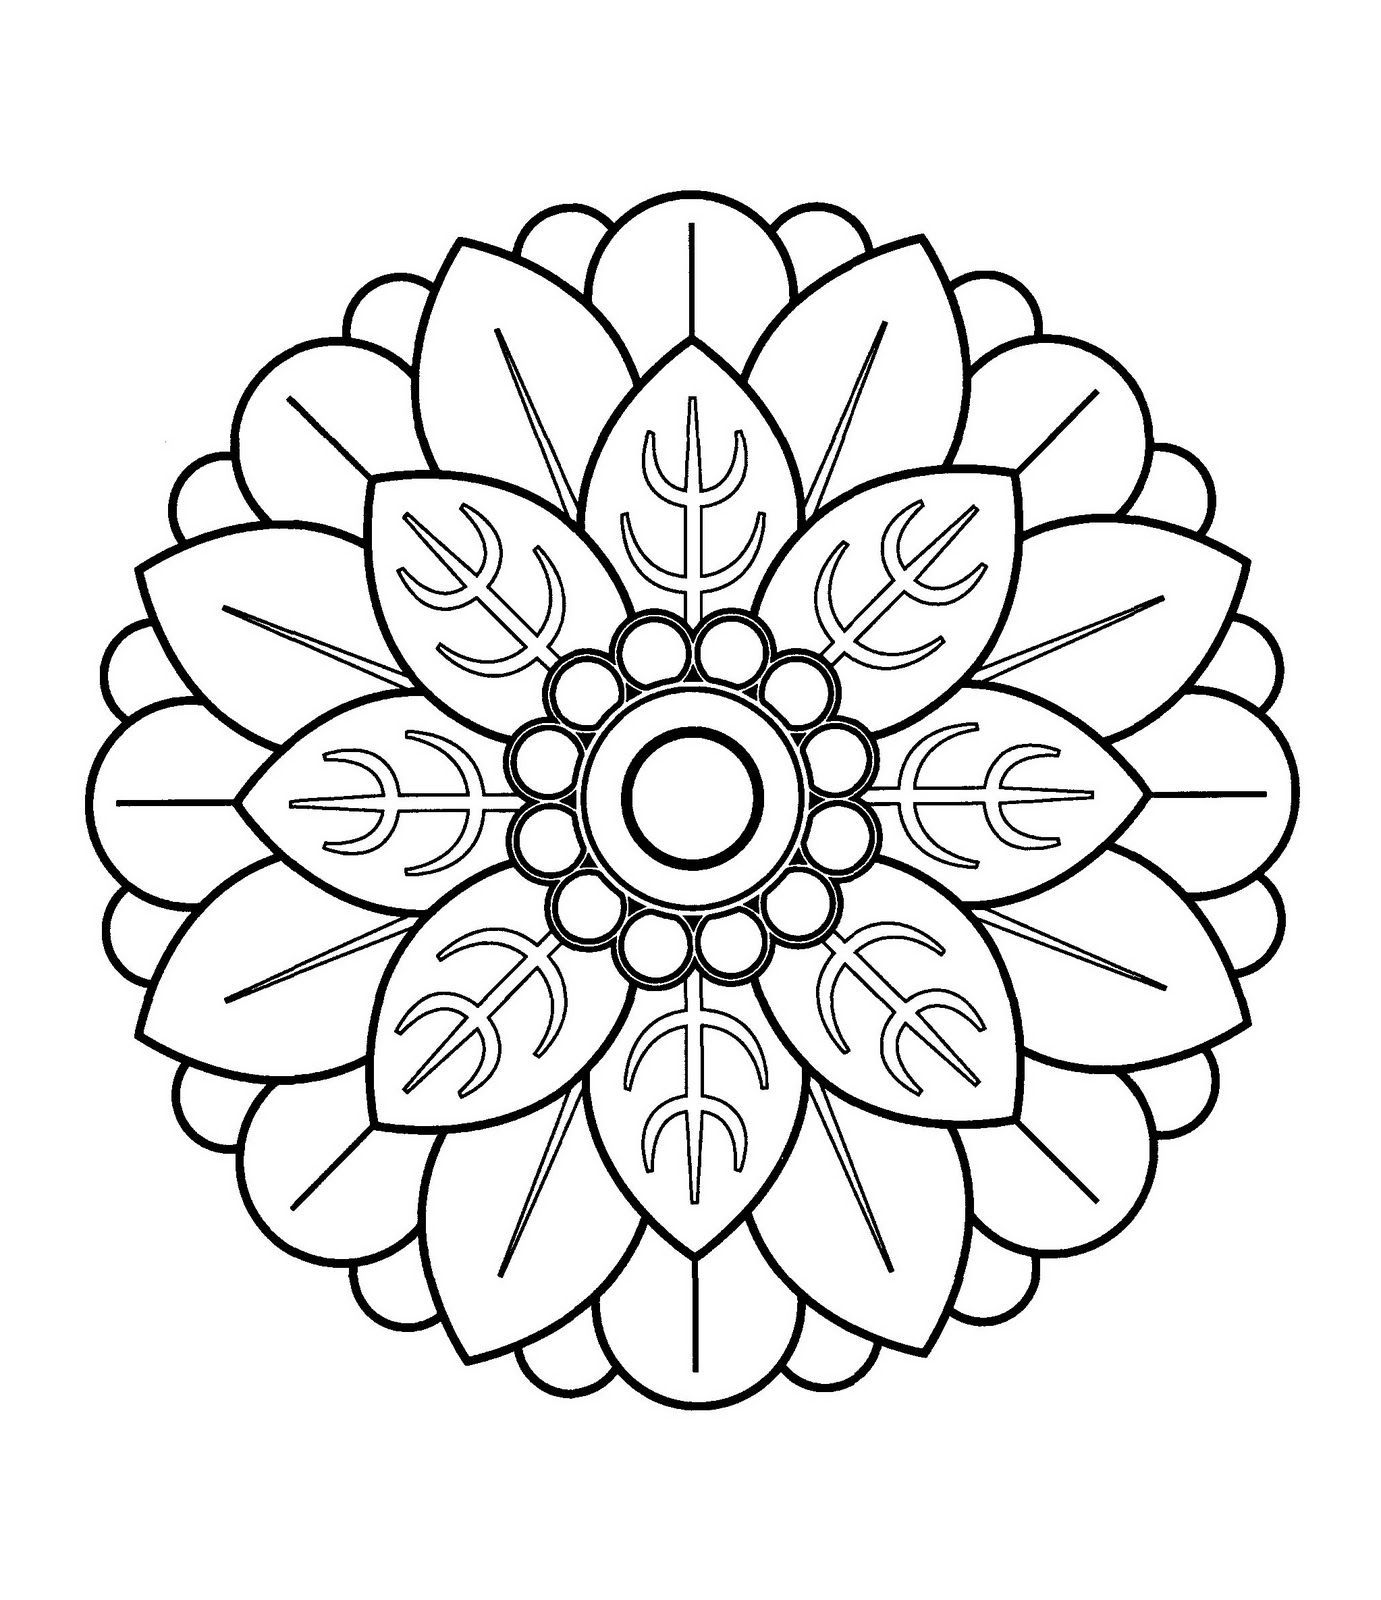 Simple mandala essay